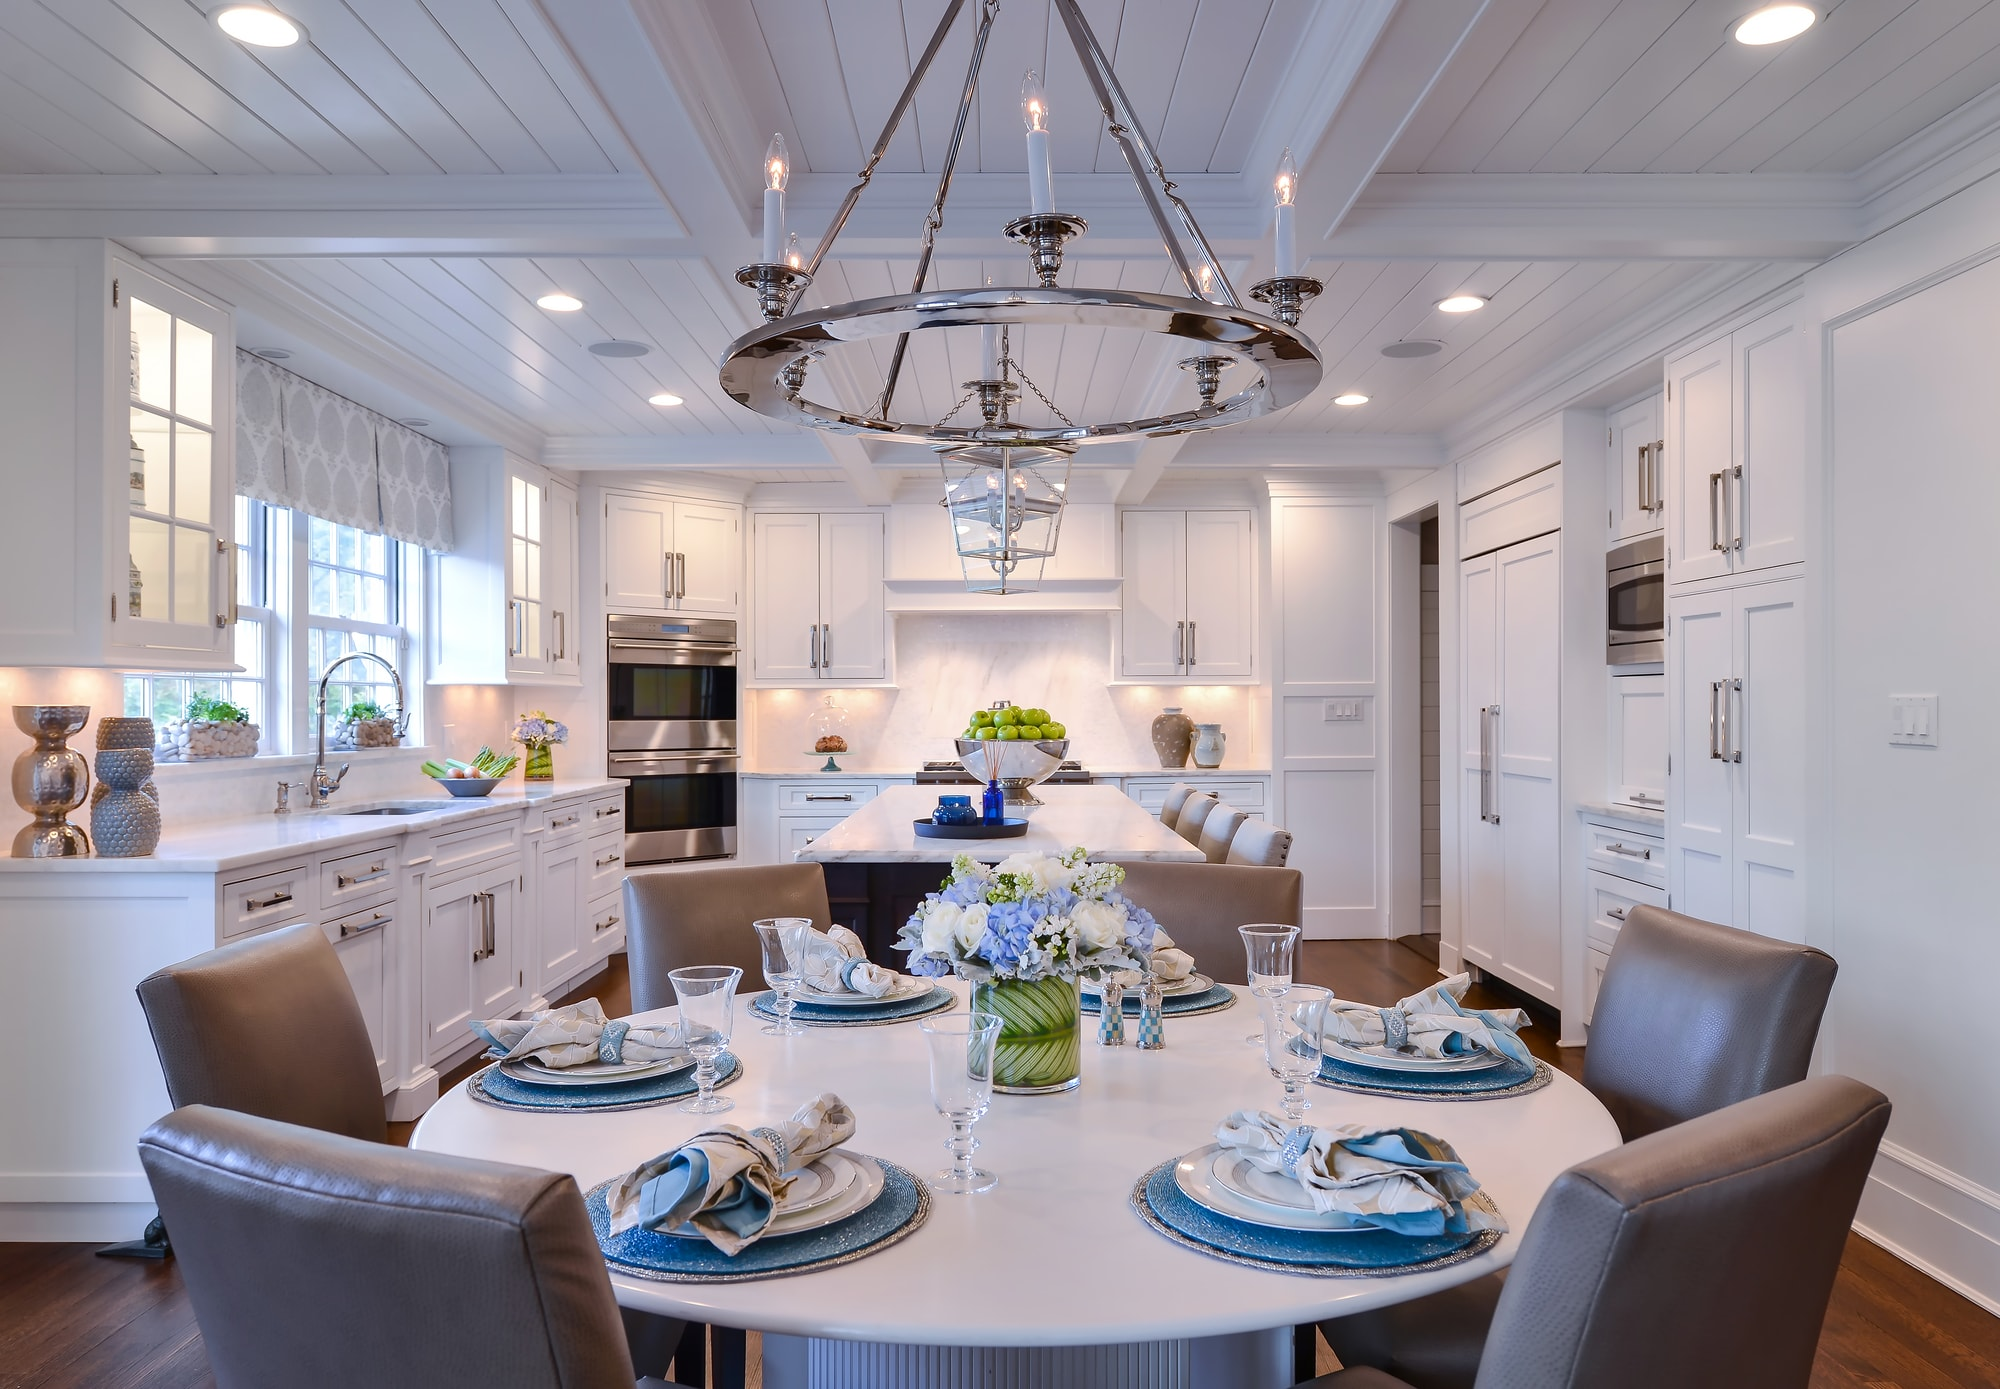 Traditional style kitchen with white shiplap ceilings